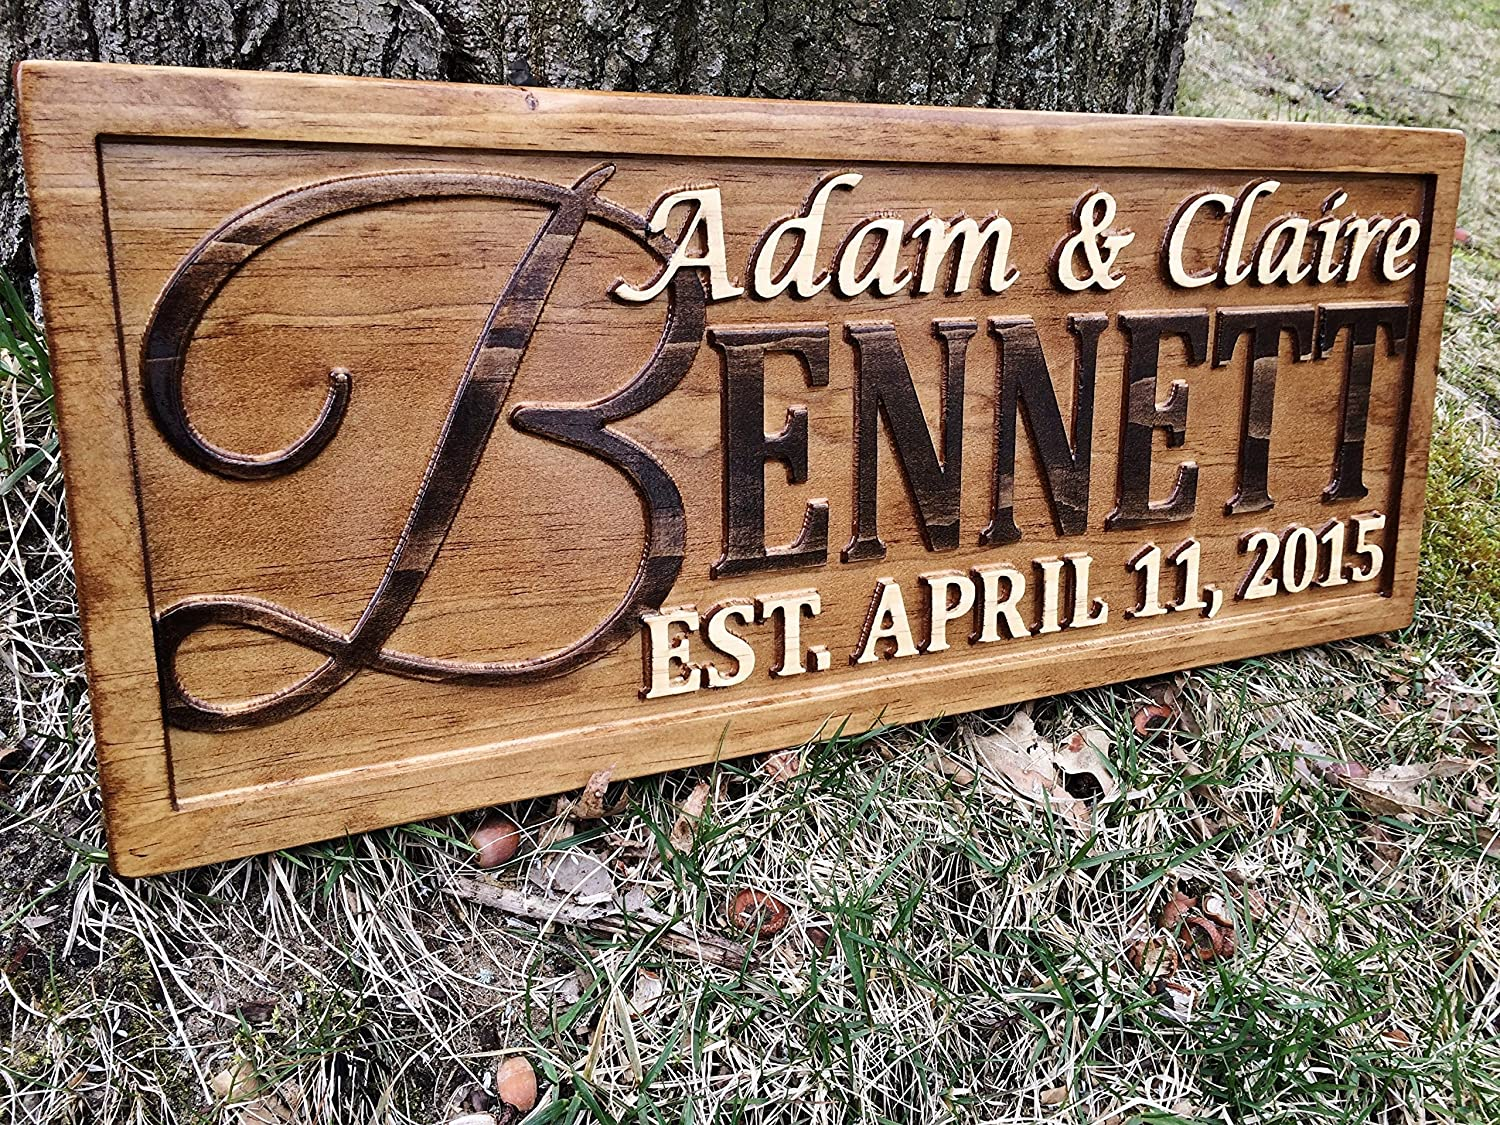 Amazon.com Personalized Family Name Sign Personalized Wedding Gifts Wall Art Rustic Home Decor Custom Carved Wooden Signs Couples 5 Year Wood Anniversary ... & Amazon.com: Personalized Family Name Sign Personalized Wedding Gifts ...